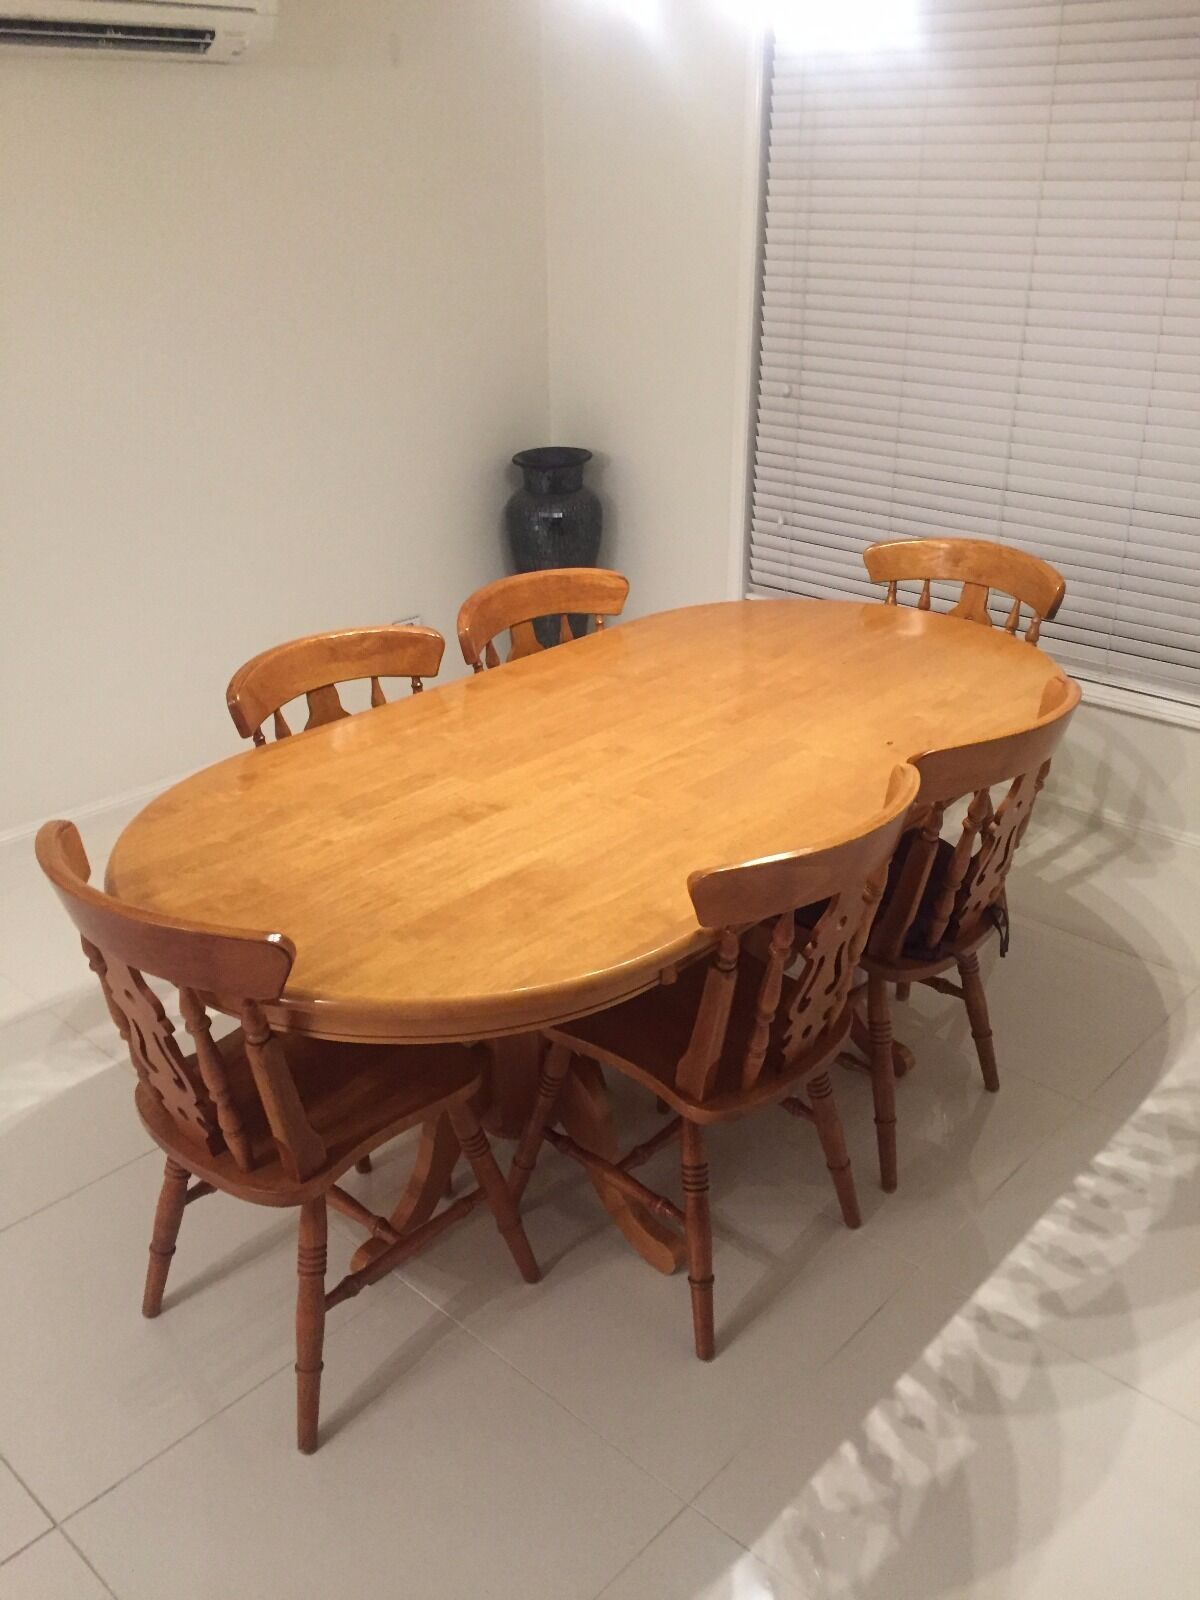 vintage dining table and chairs aud picclick au